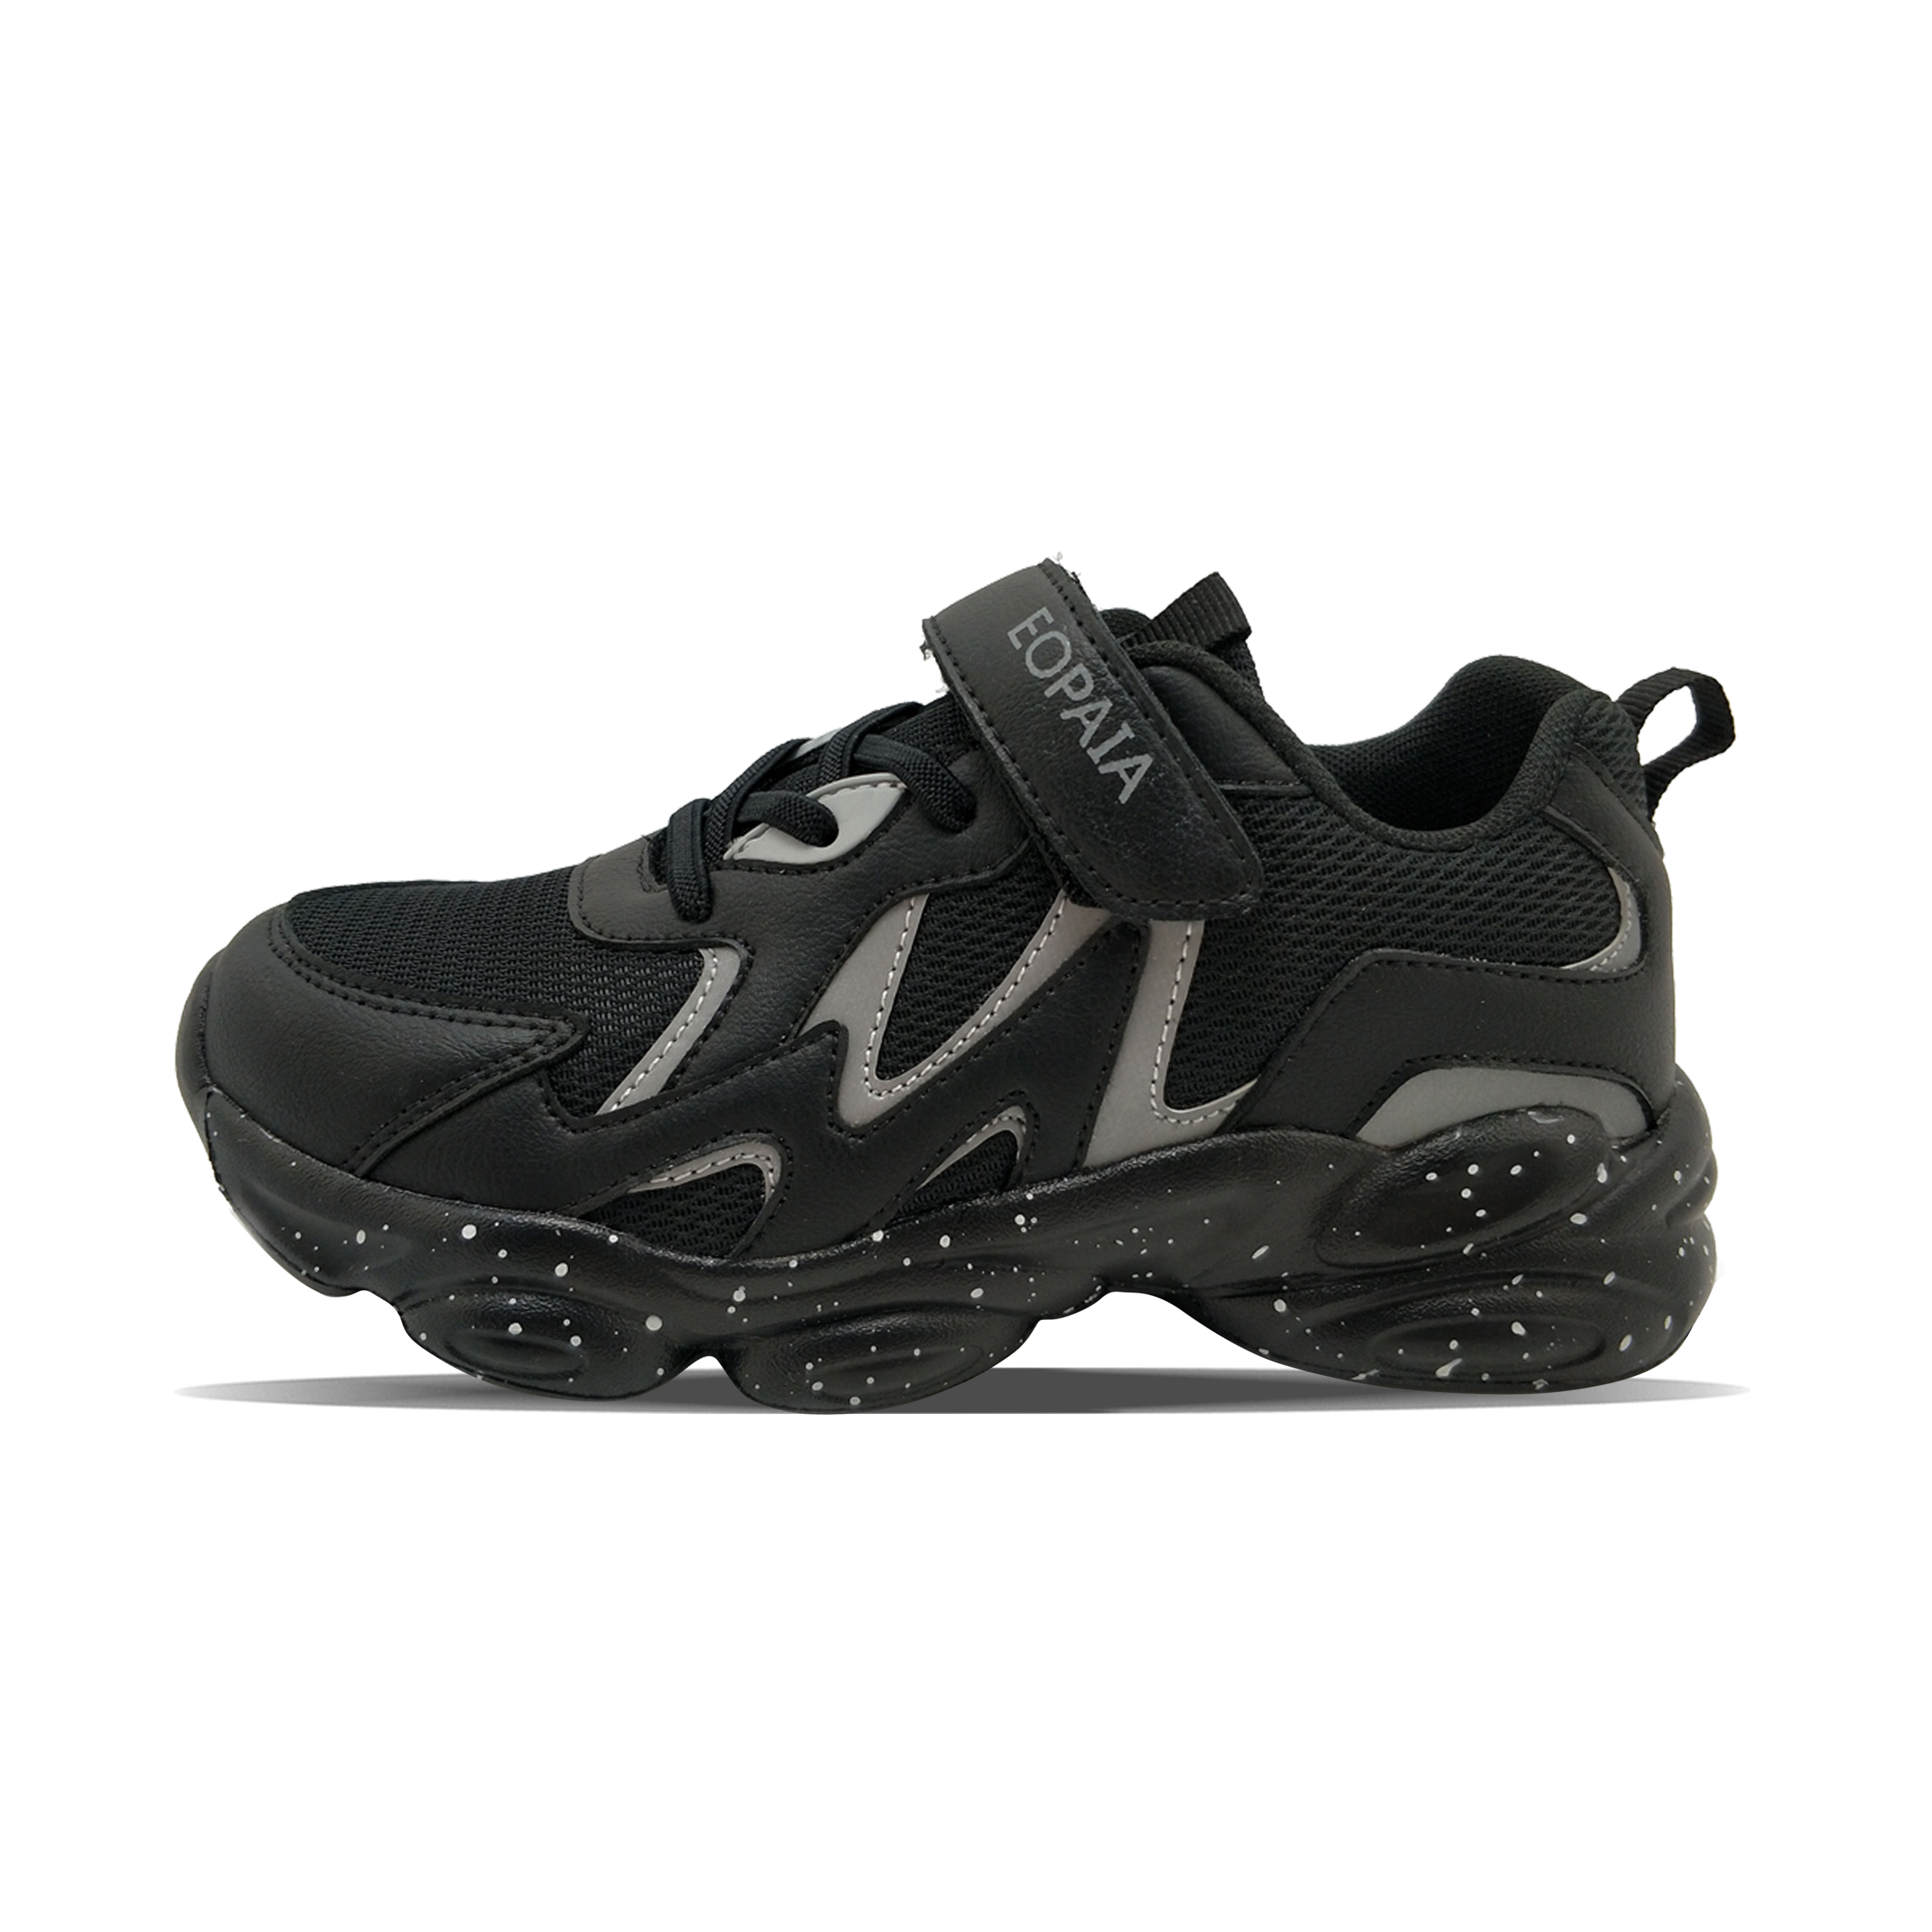 Black reflective leather PU mesh breathable winter boy's sports shoes